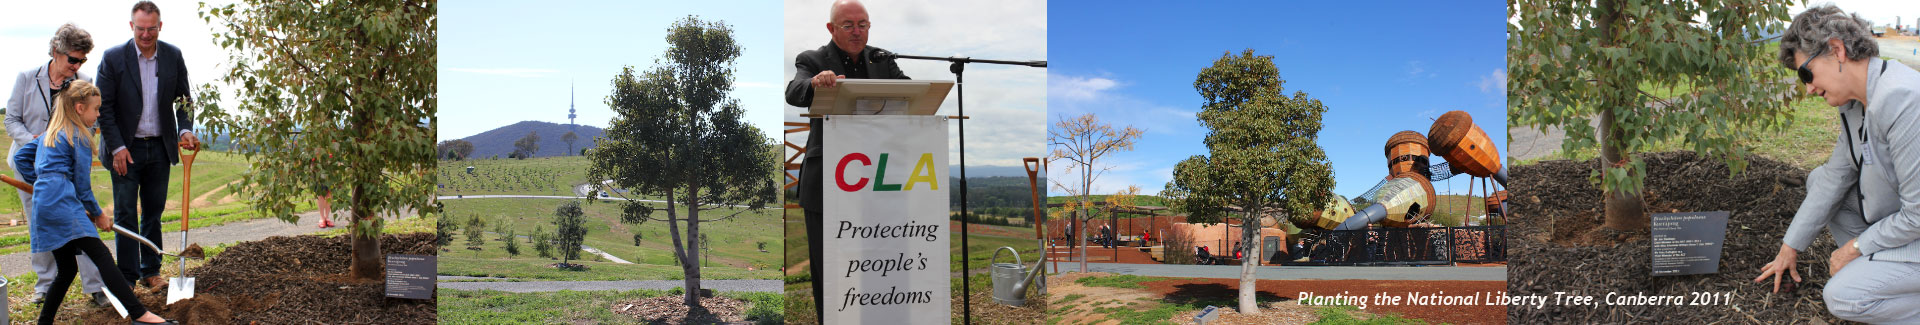 Declaration of AGM of CLA held in 2020